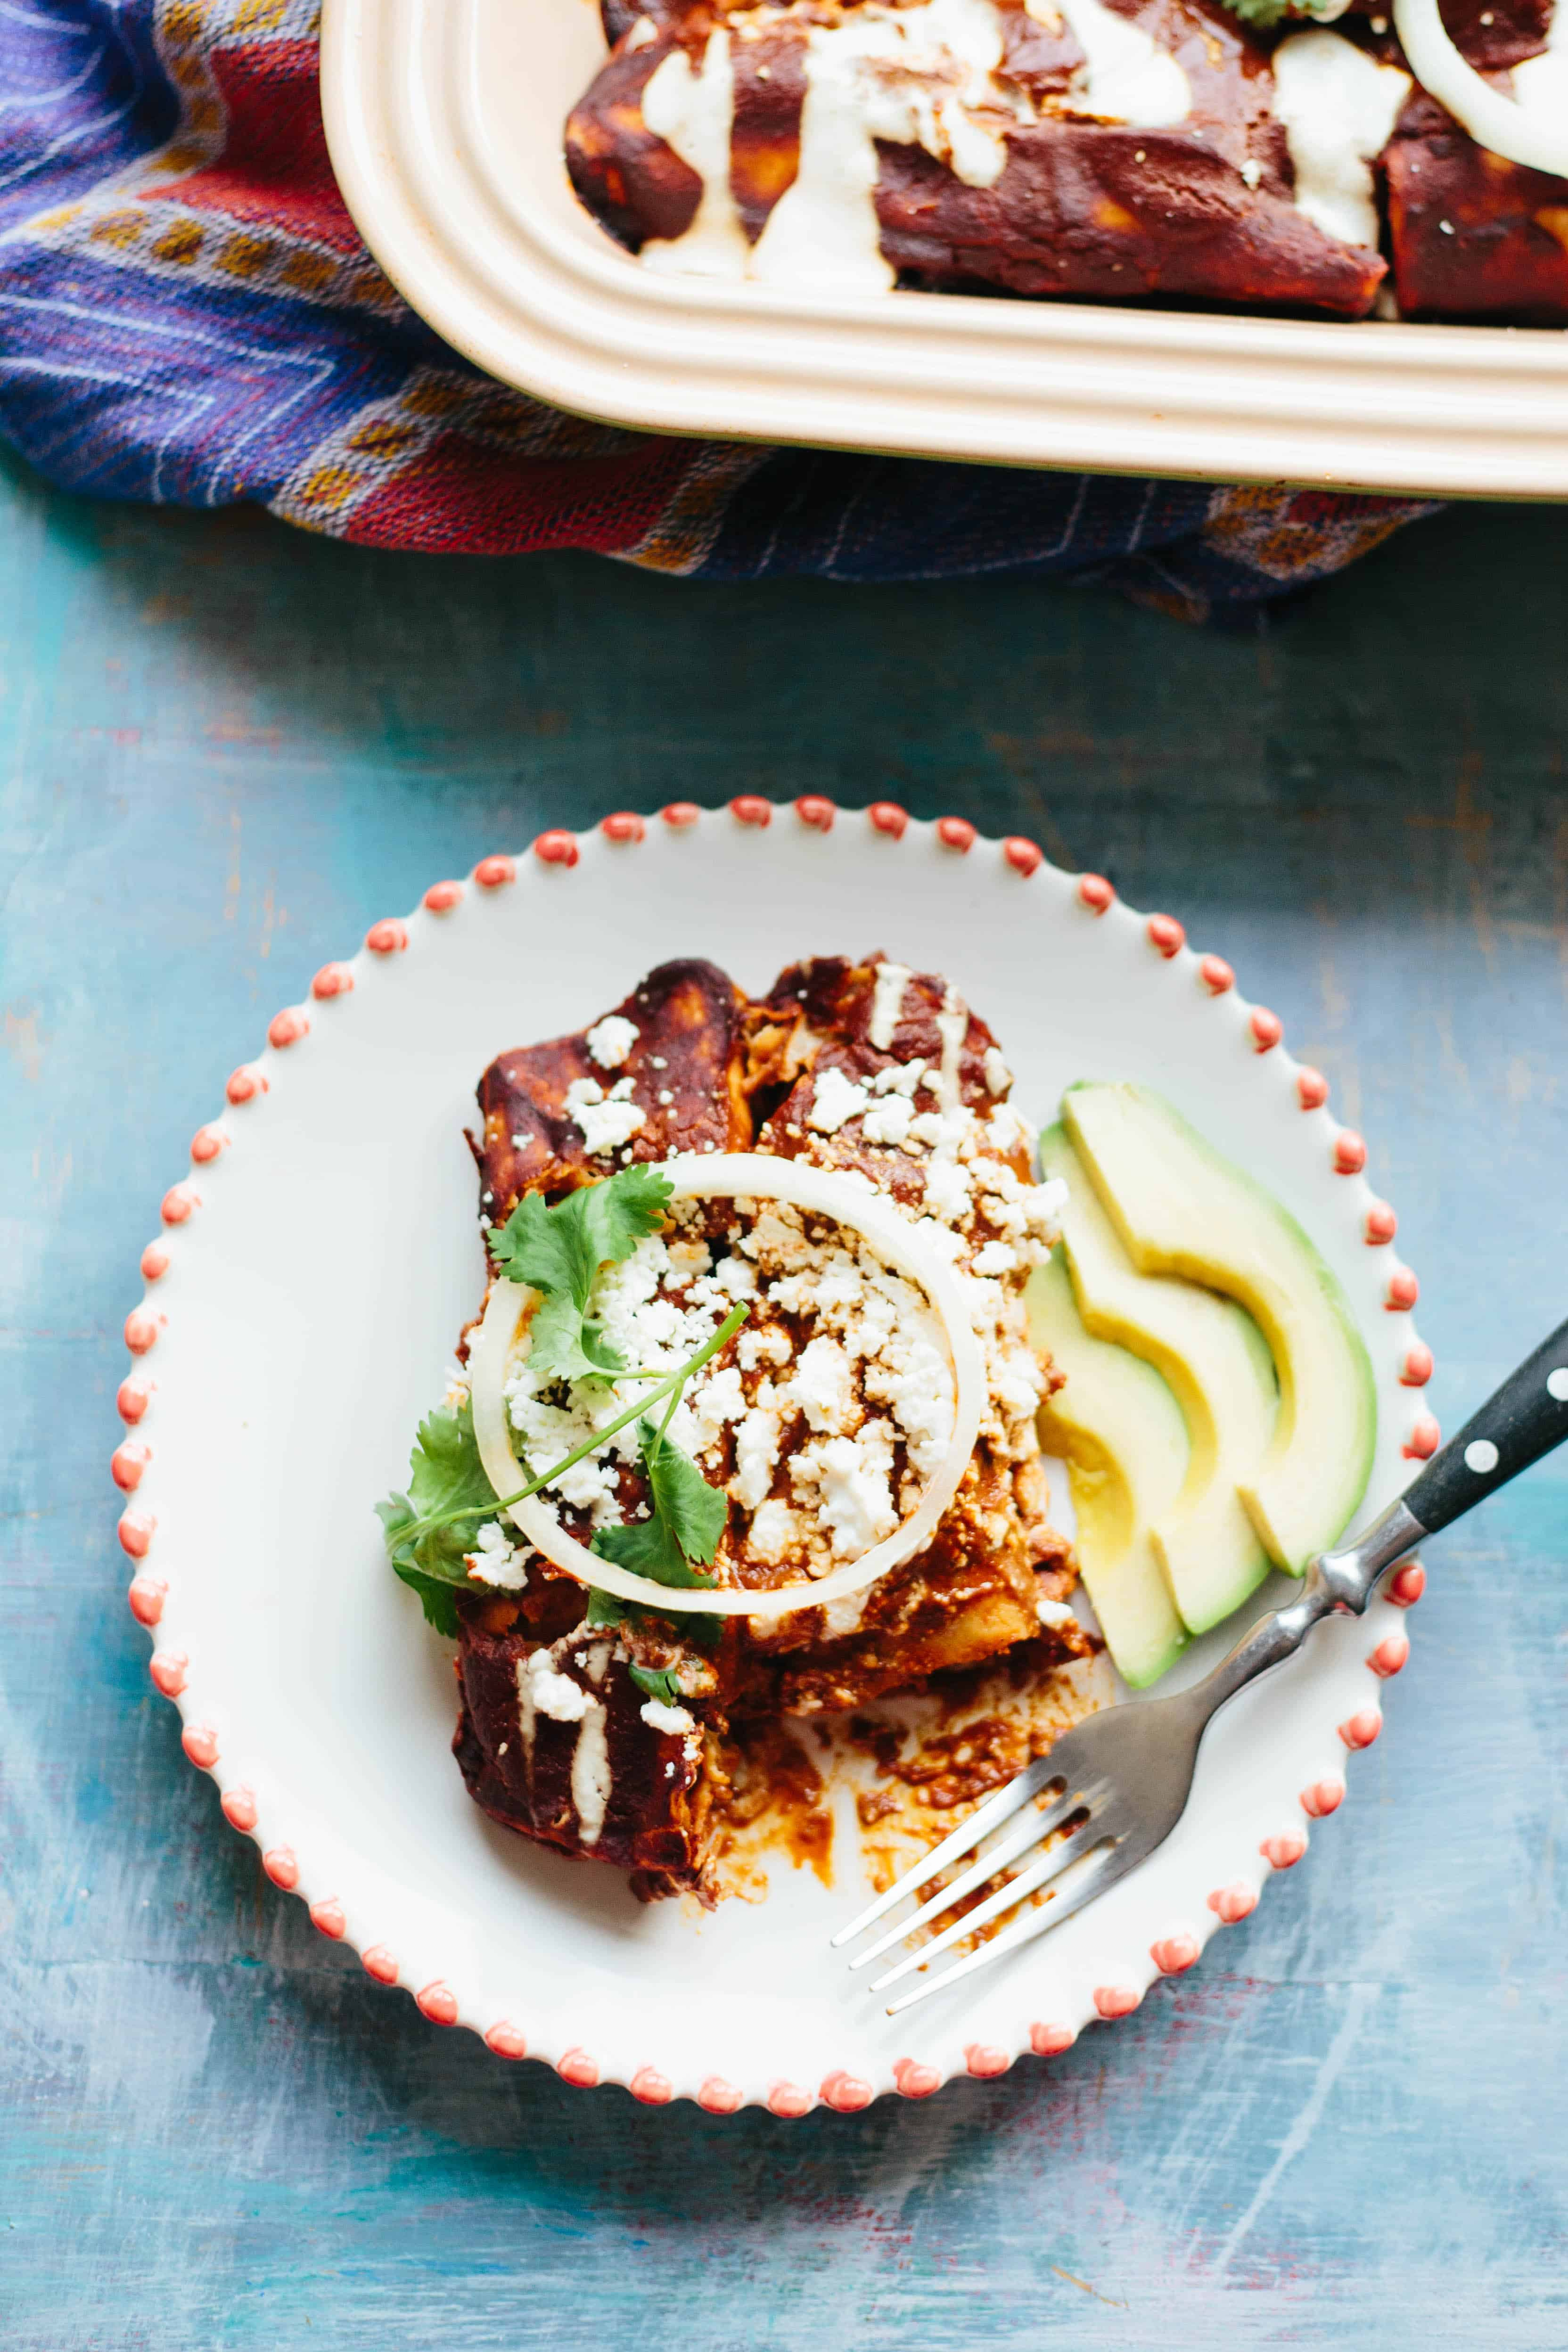 This recipe for Chicken Mole Enchiladas is easy to make, yet boasts an incredible amount of flavor. It's a healthy, satisfying and delicious Mexican recipe that everyone will love! #easy #authentic #Mexican #enchiladas #mole #chicken #recipe | ColeyCooks.com